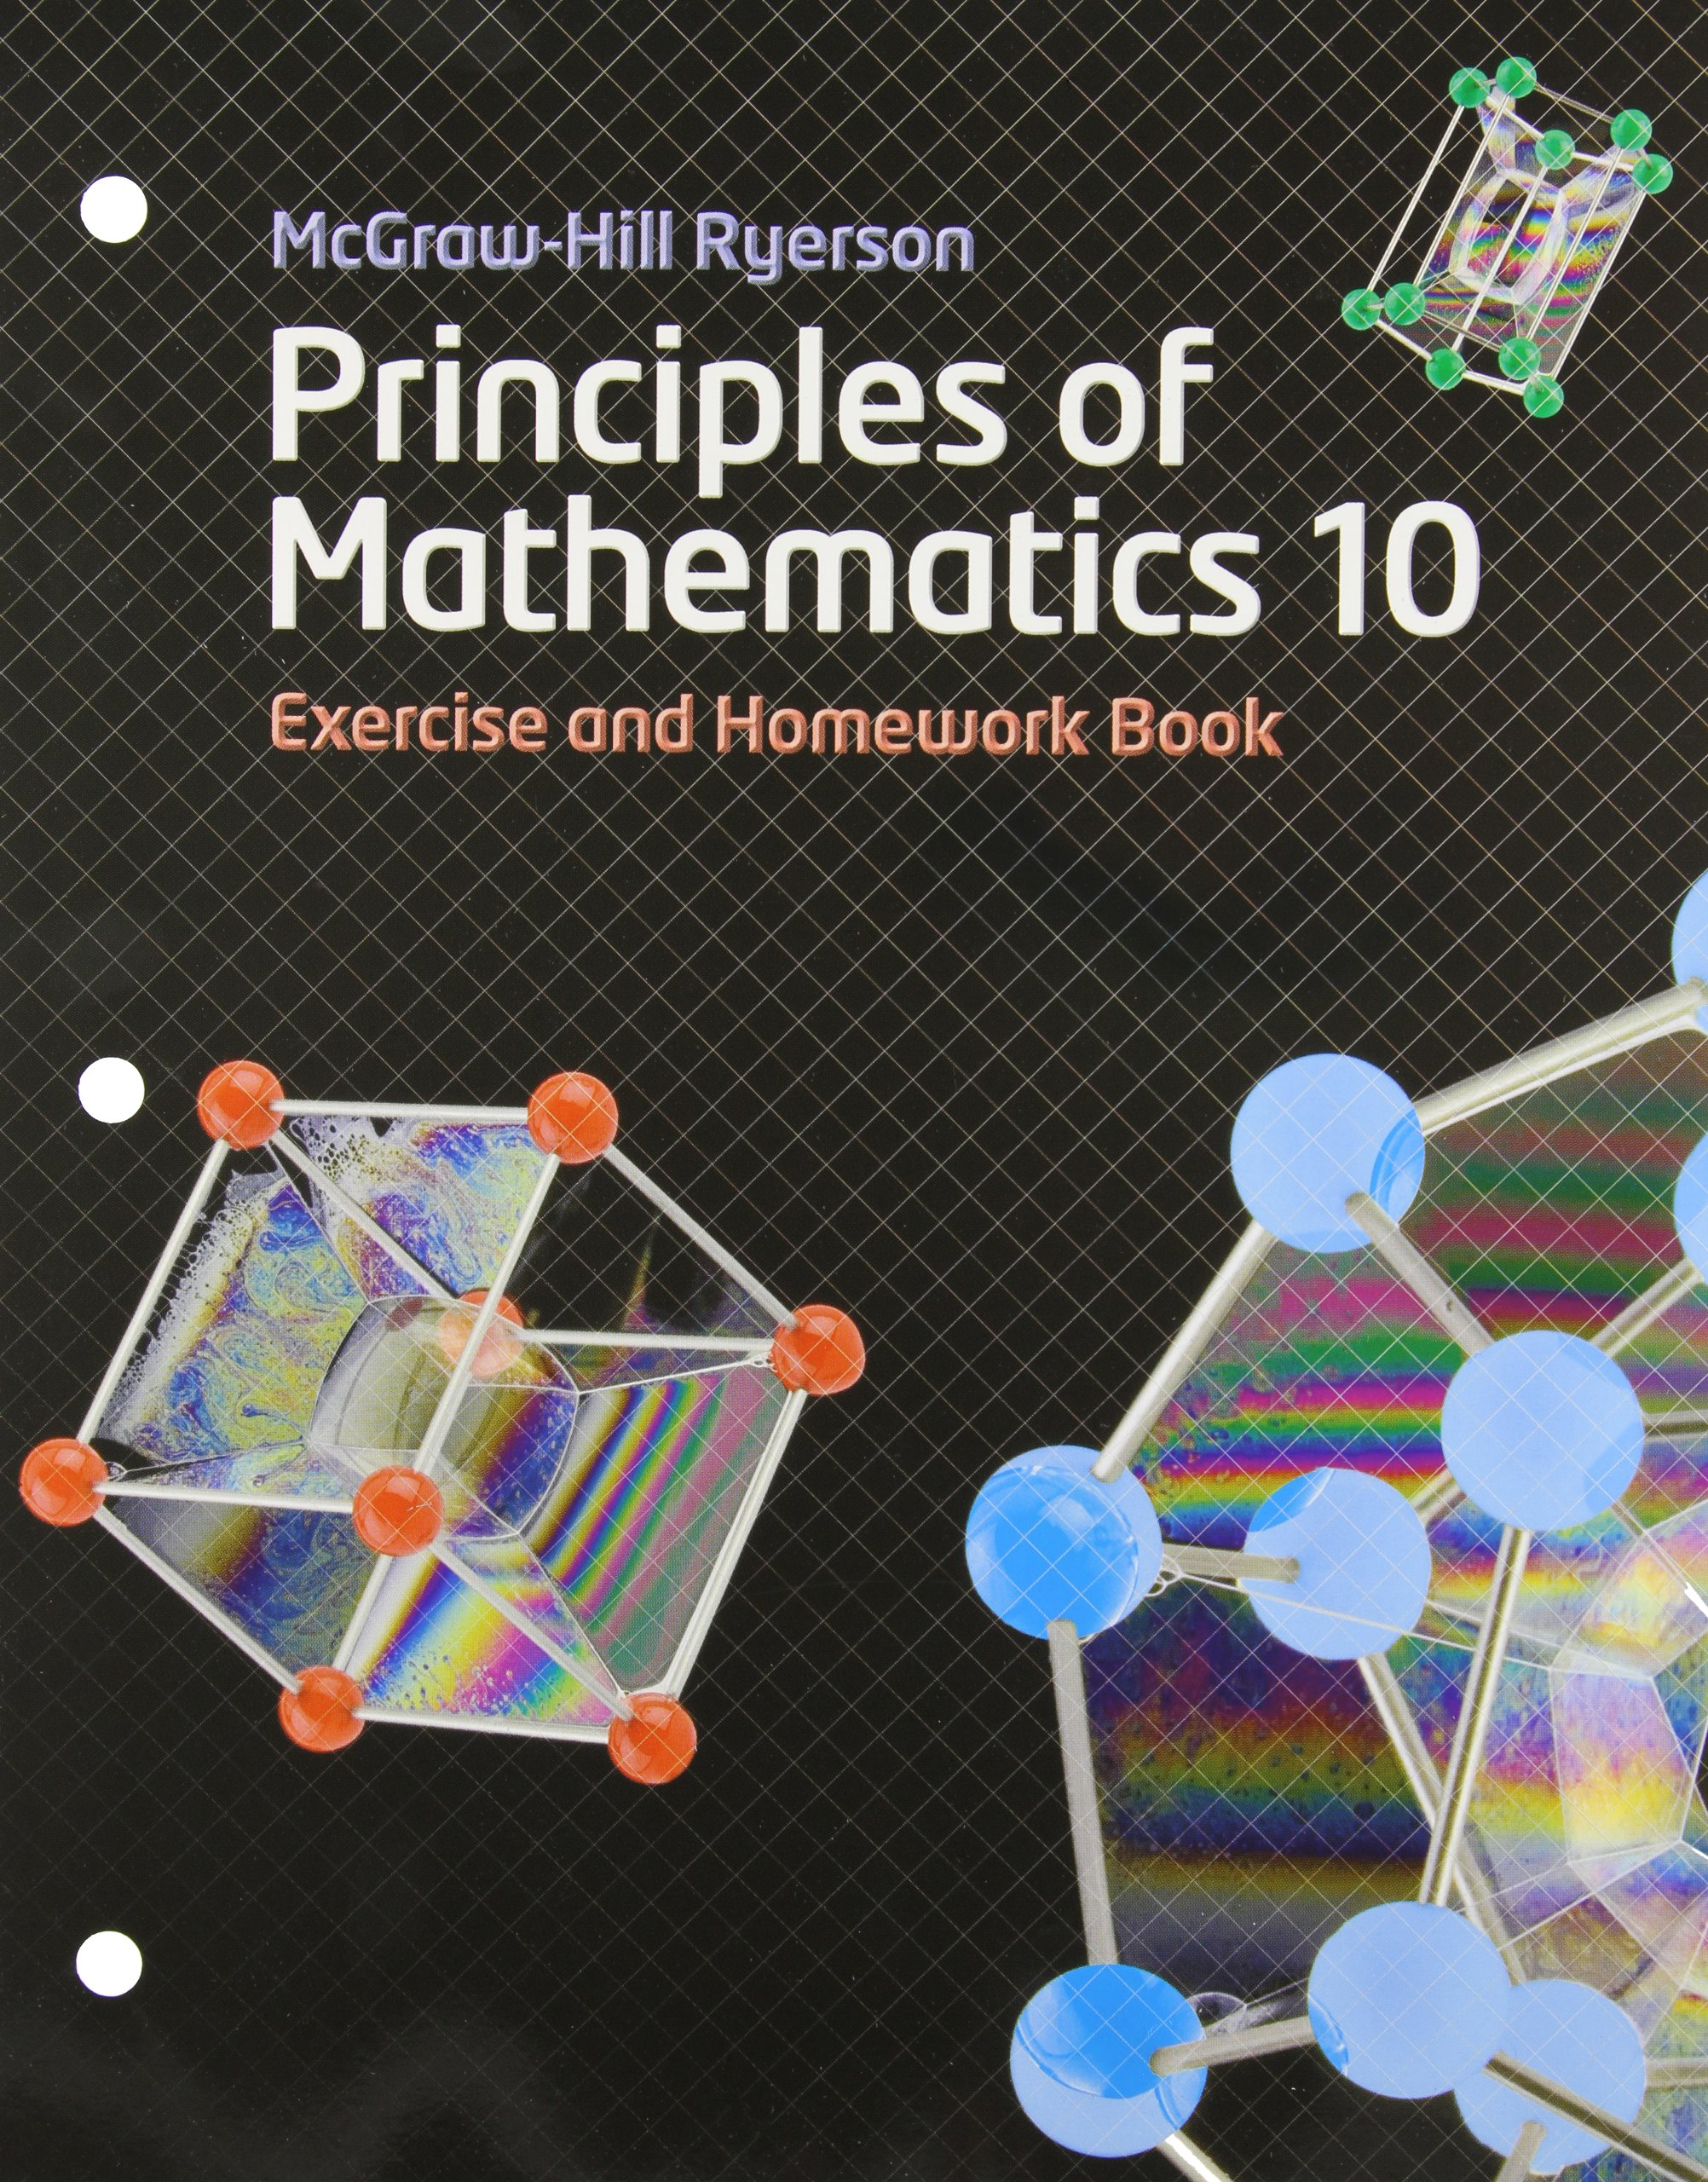 Principles of mathematics 9: chris dearling: 9780070973190: amazon.